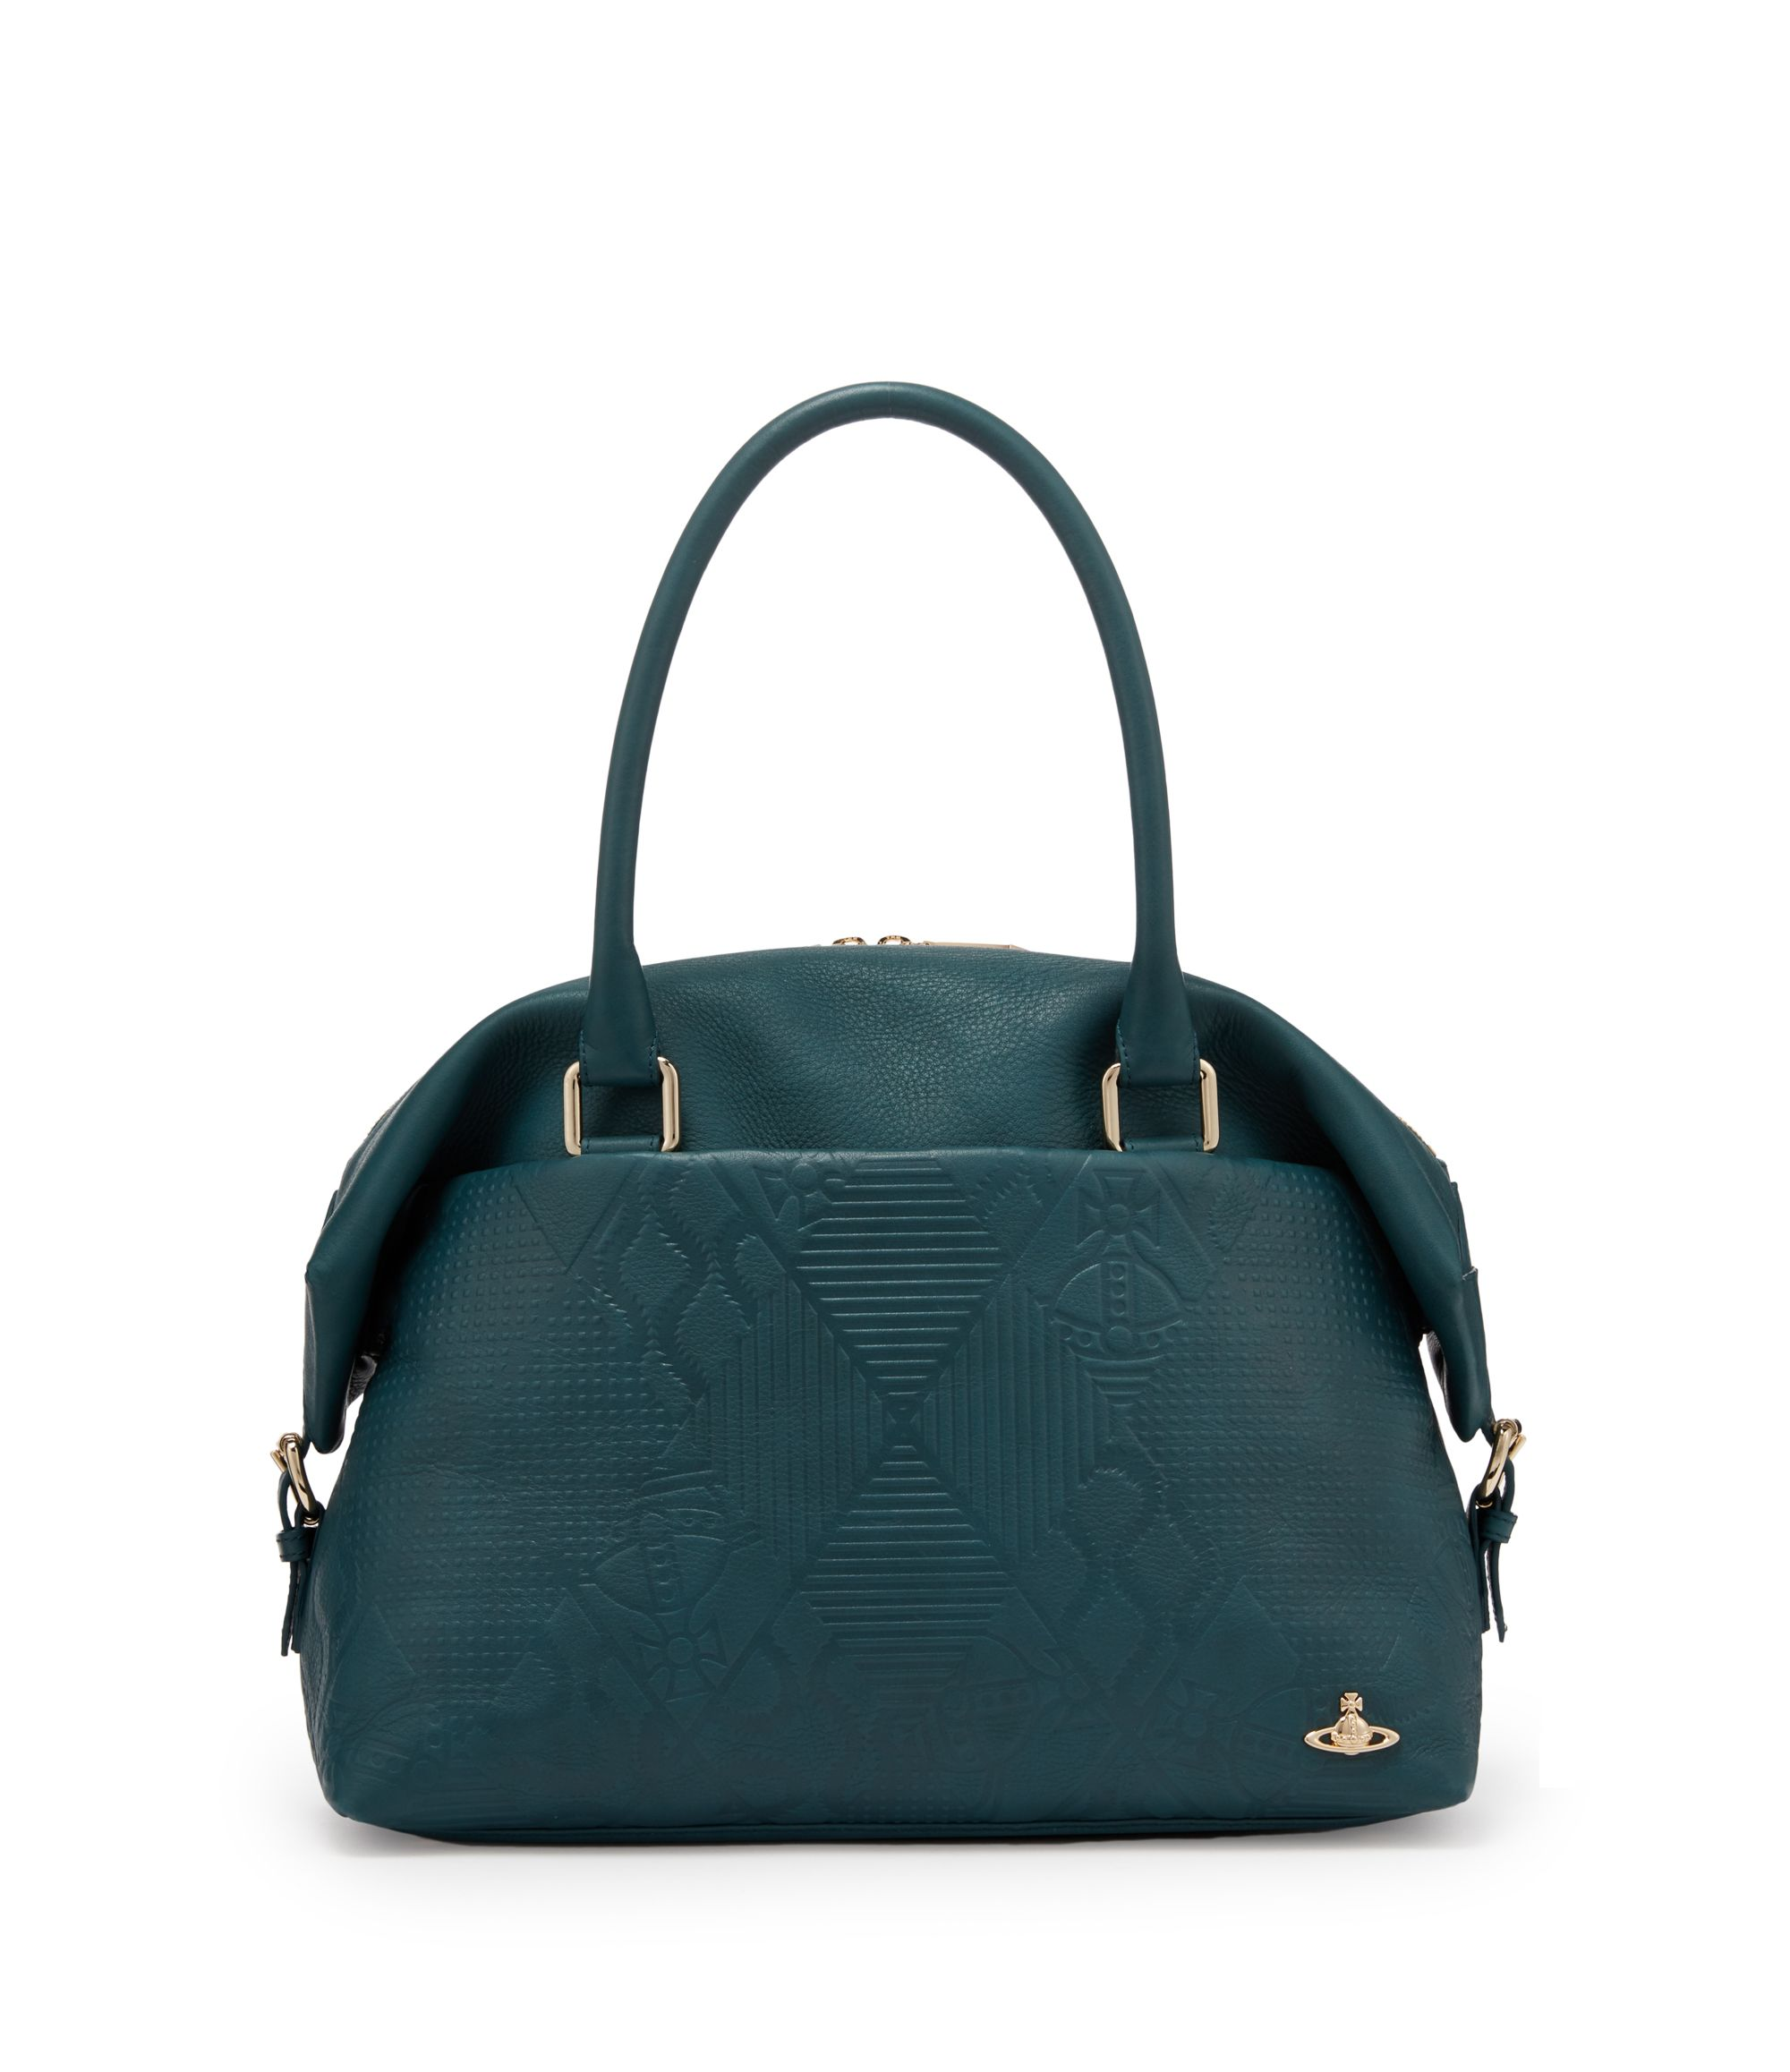 6b6637f55a71 VIVIENNE WESTWOOD Green Hogarth Bag 131008.  viviennewestwood  bags   leather